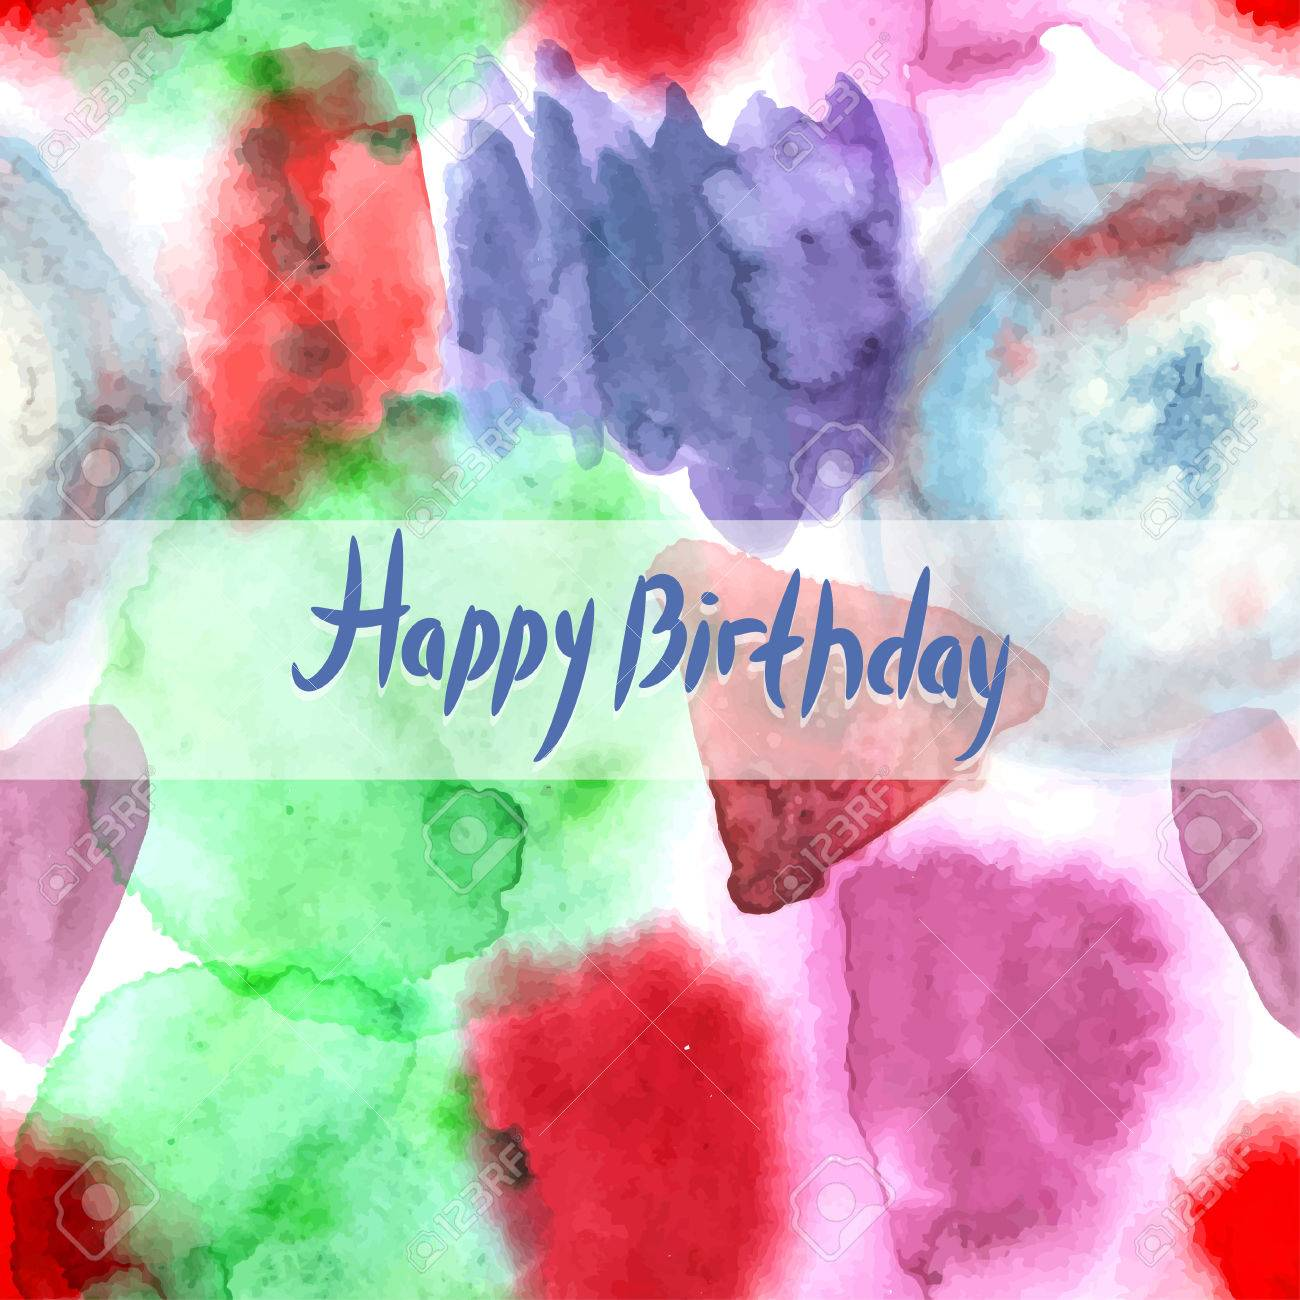 Happy Birthday Card Abstract Watercolor Art Hand Paint Pattern On White Background Stock Vector